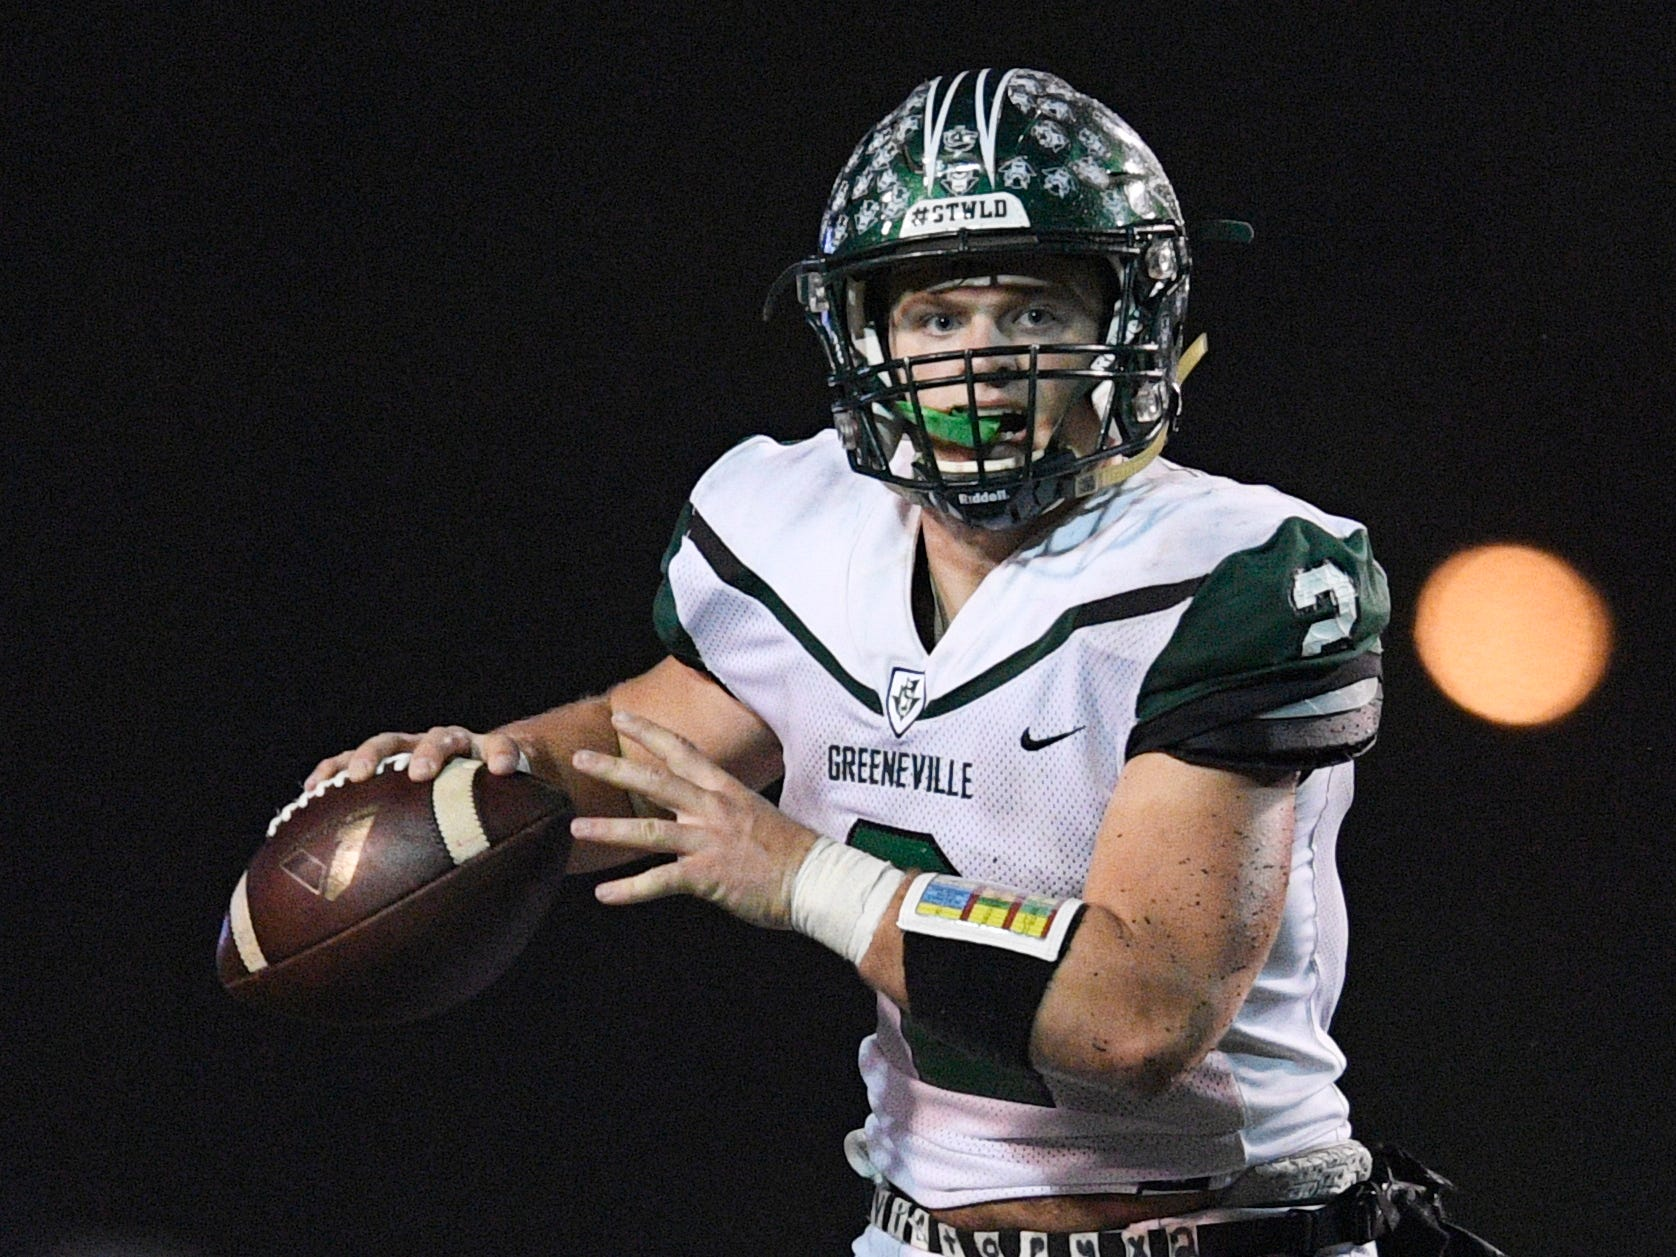 Greeneville's Cade Ballard (2) looks to pass in the second half of the team's Class 4A BlueCross Bowl state championship at Tennessee Tech's Tucker Stadium in Cookeville, Tenn., on Thursday, Nov. 29, 2018.